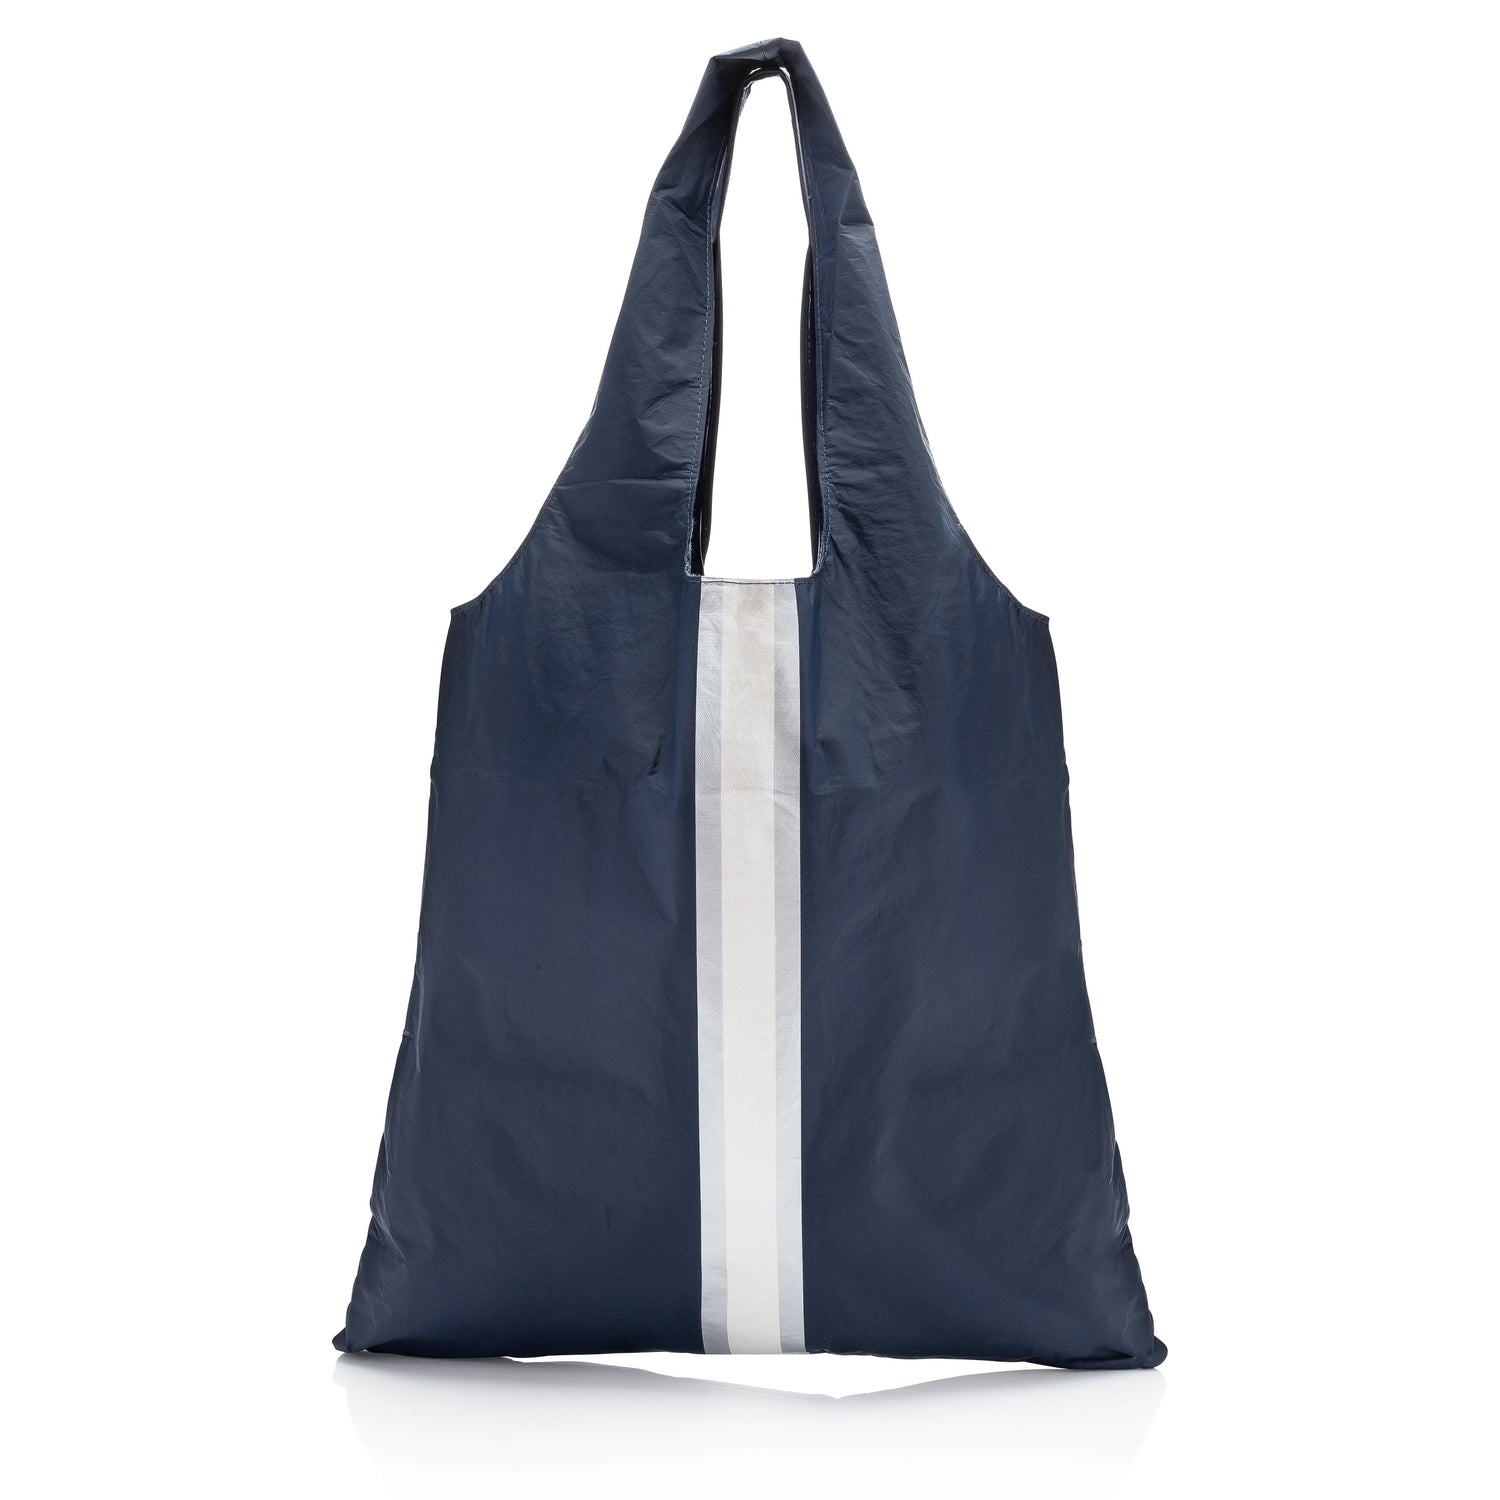 Carryall - Navy HLT Collection with a Double Metallic Line